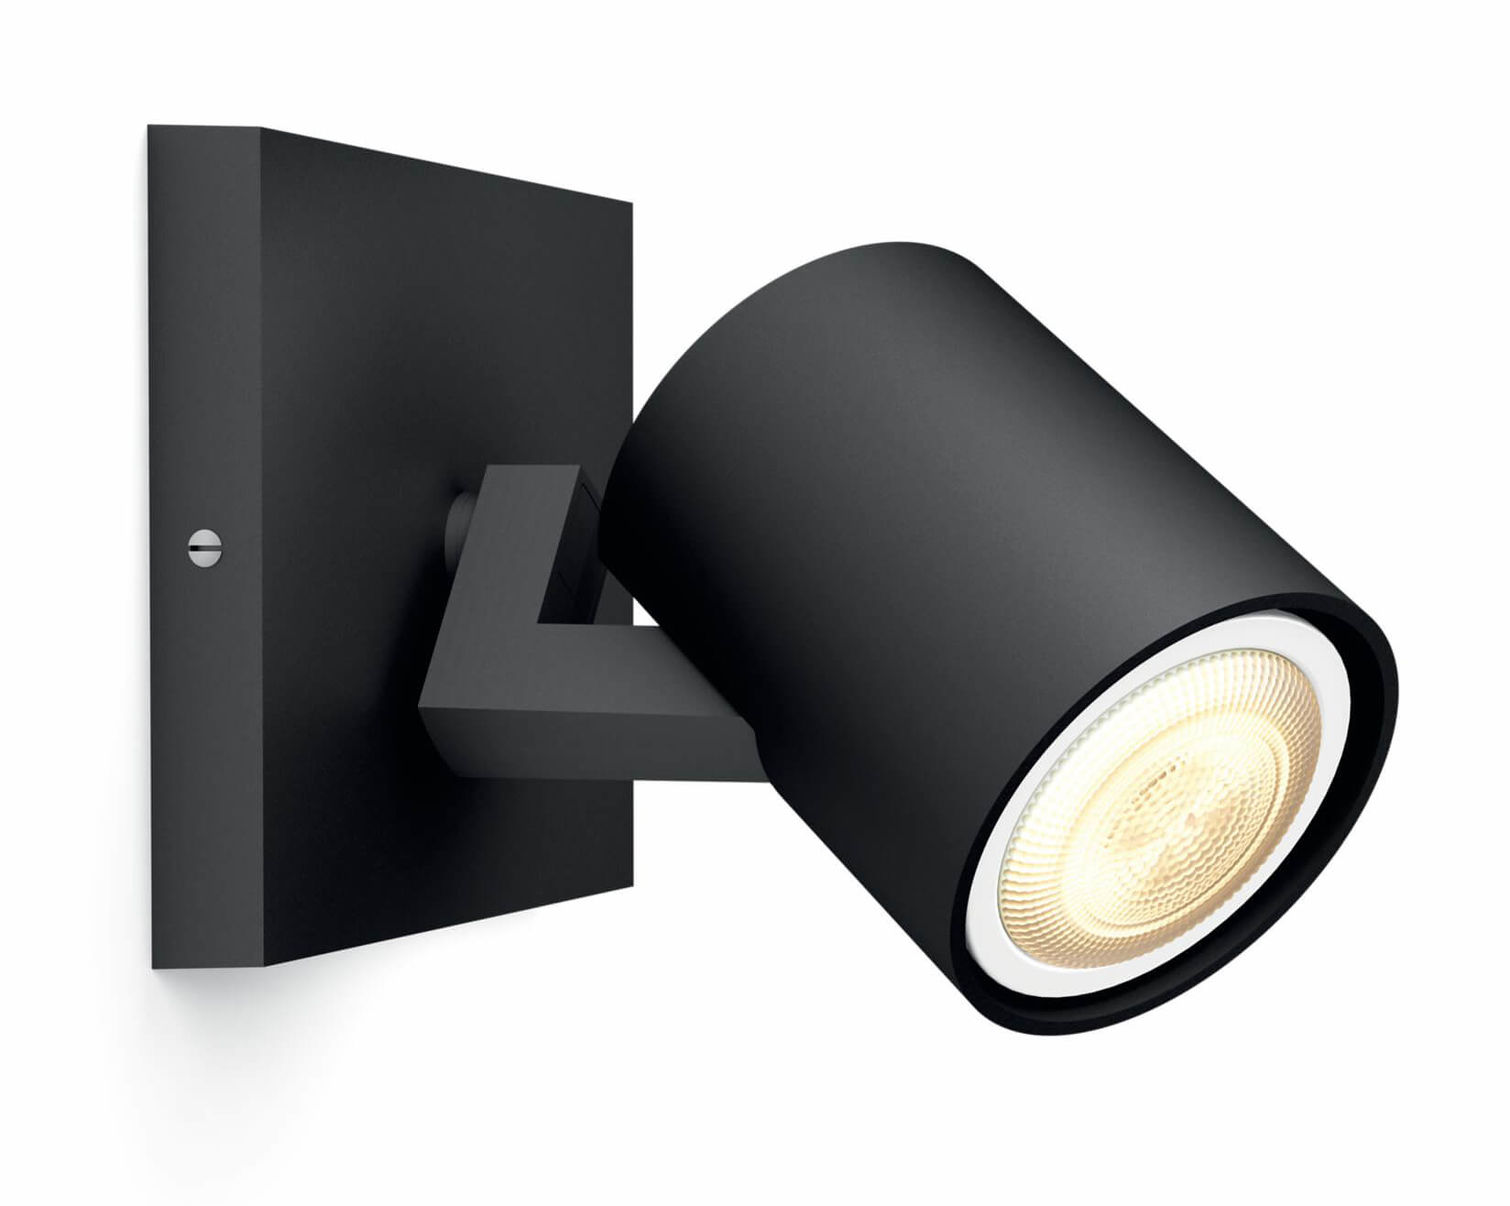 Plafoniera A Led Beign Philips Hue : Philips hue runner led spot incl. dimmer switch nero plafoniera